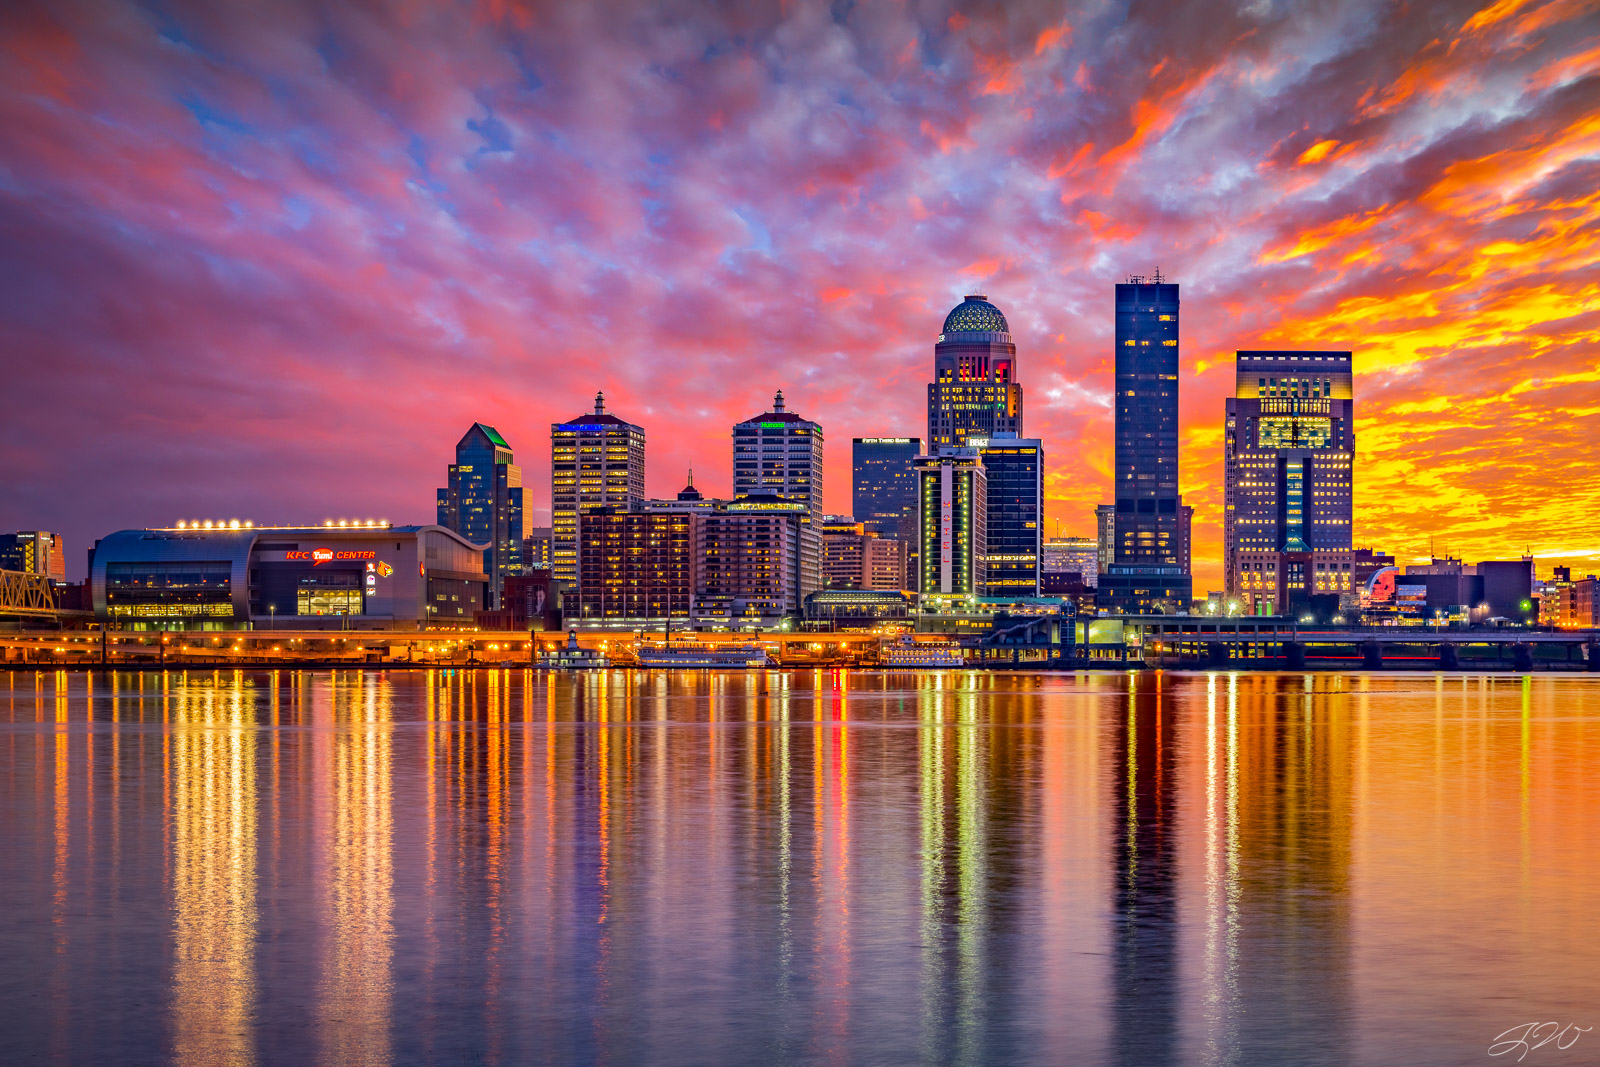 Cityscape, Clouds, Colorful, Kentucky, Louisville, Ohio River, Skyline, Sunset, ashland park, jefferson, sky, photo